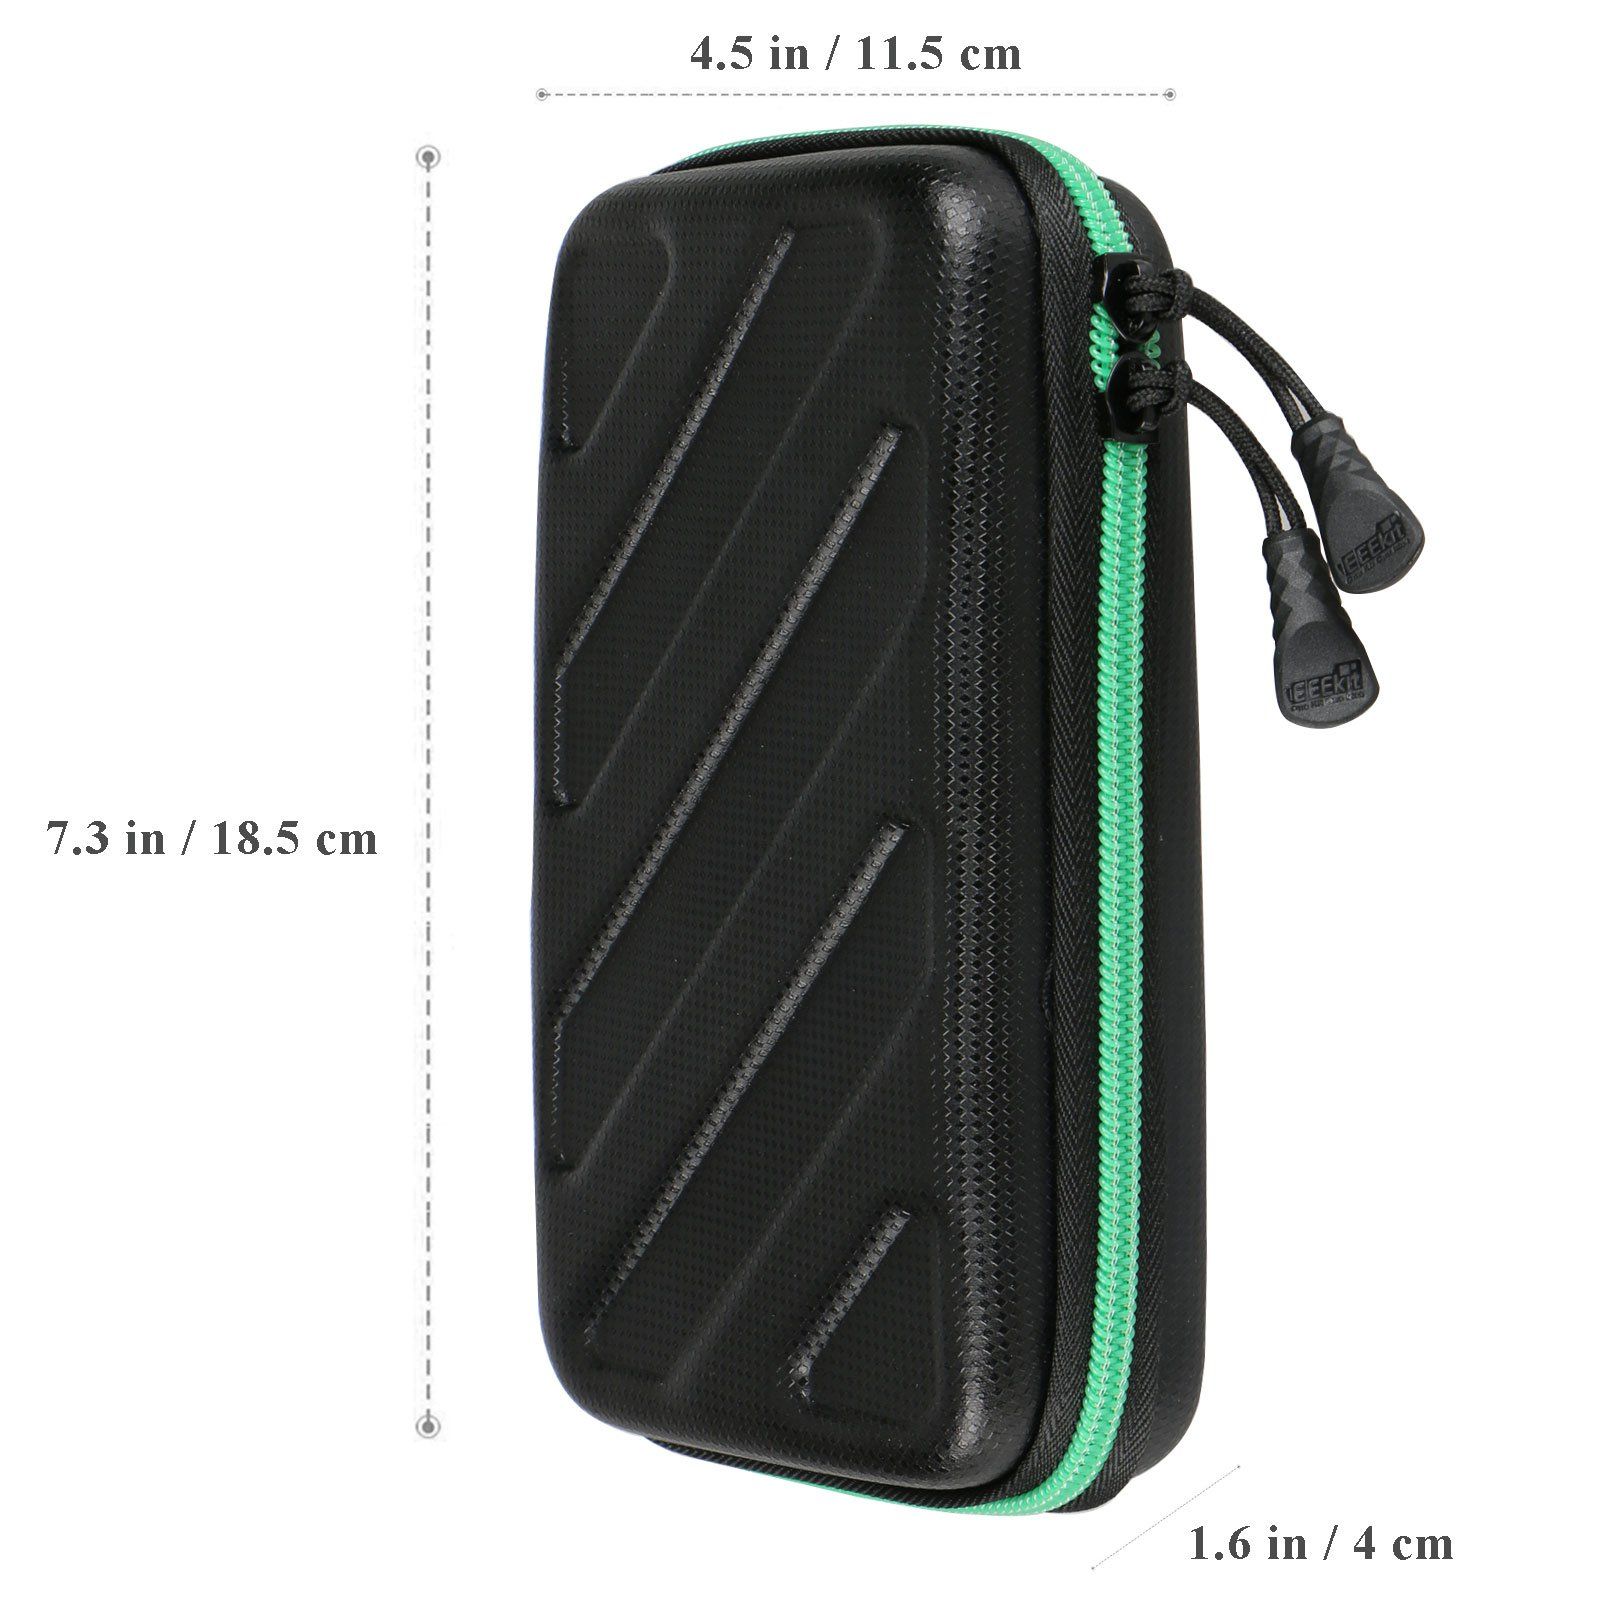 EEEKit Portable Travel Cable Organizer Electronics Accessories Cases Digital Bag for Hard Drives, Charging Cords, USB Charger Adapter, USB Flash Drives, Data Cable (7.3 in x 4.5 in x 1.6 in) by EEEKit (Image #6)